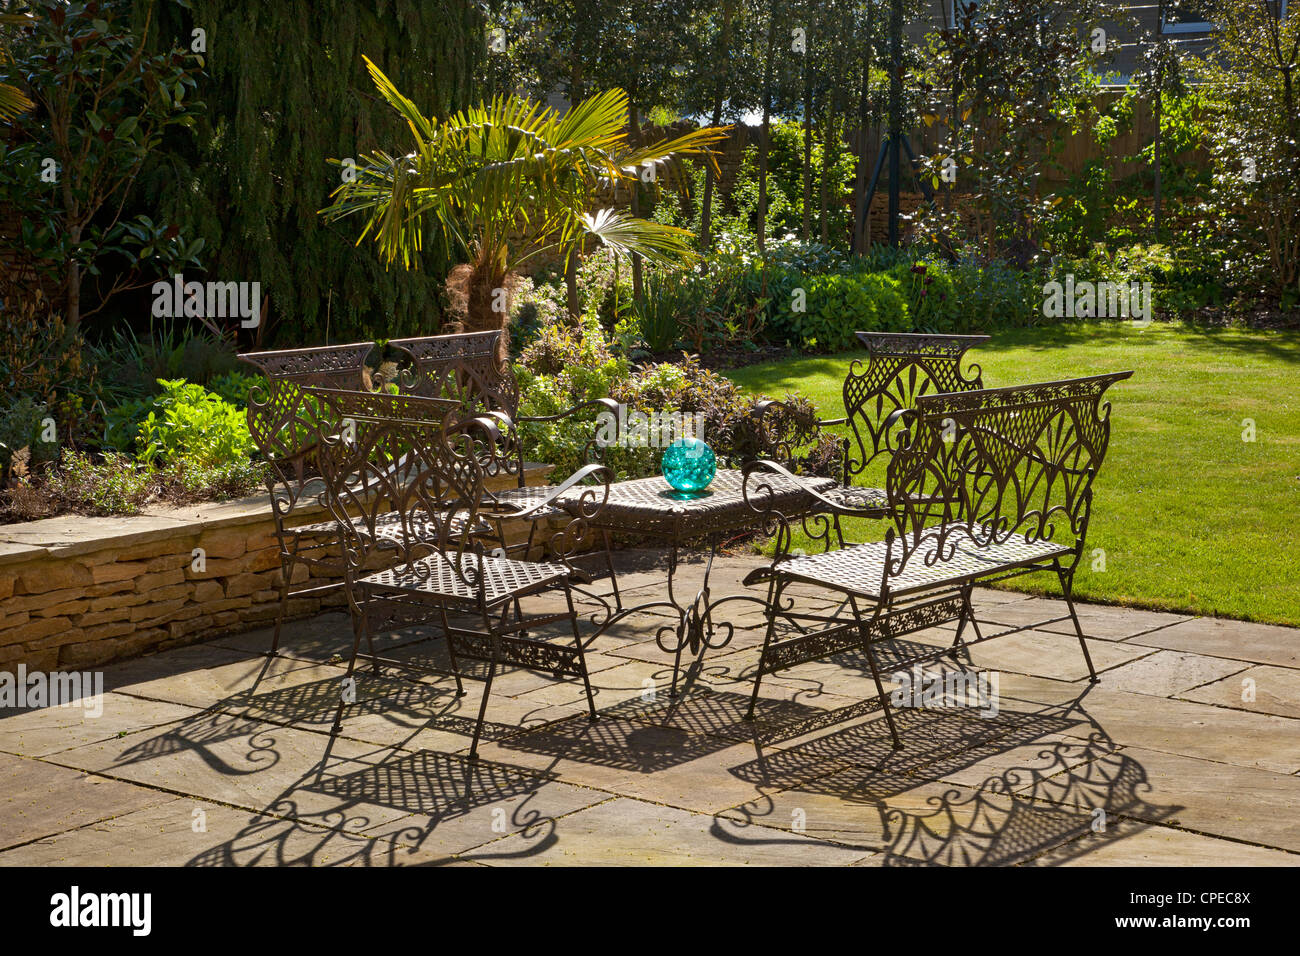 french style metal table and chairs furniture on stone patio in rh alamy com french style outdoor furniture perth french style outdoor furniture nz